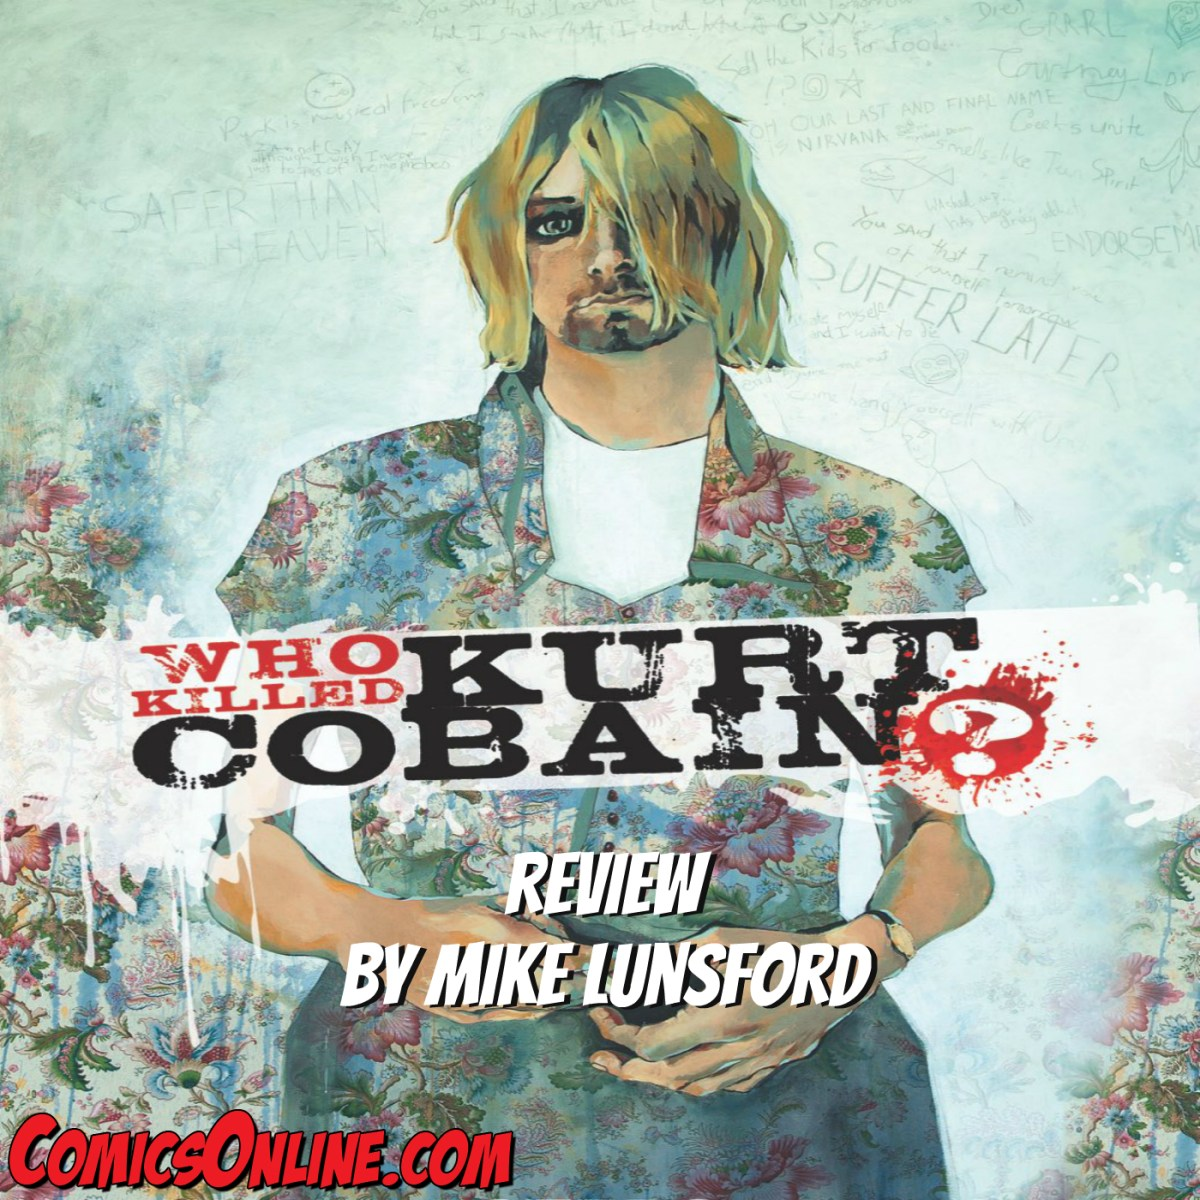 Comic Review: Who Killed Kurt Cobain? The Story of Boddah